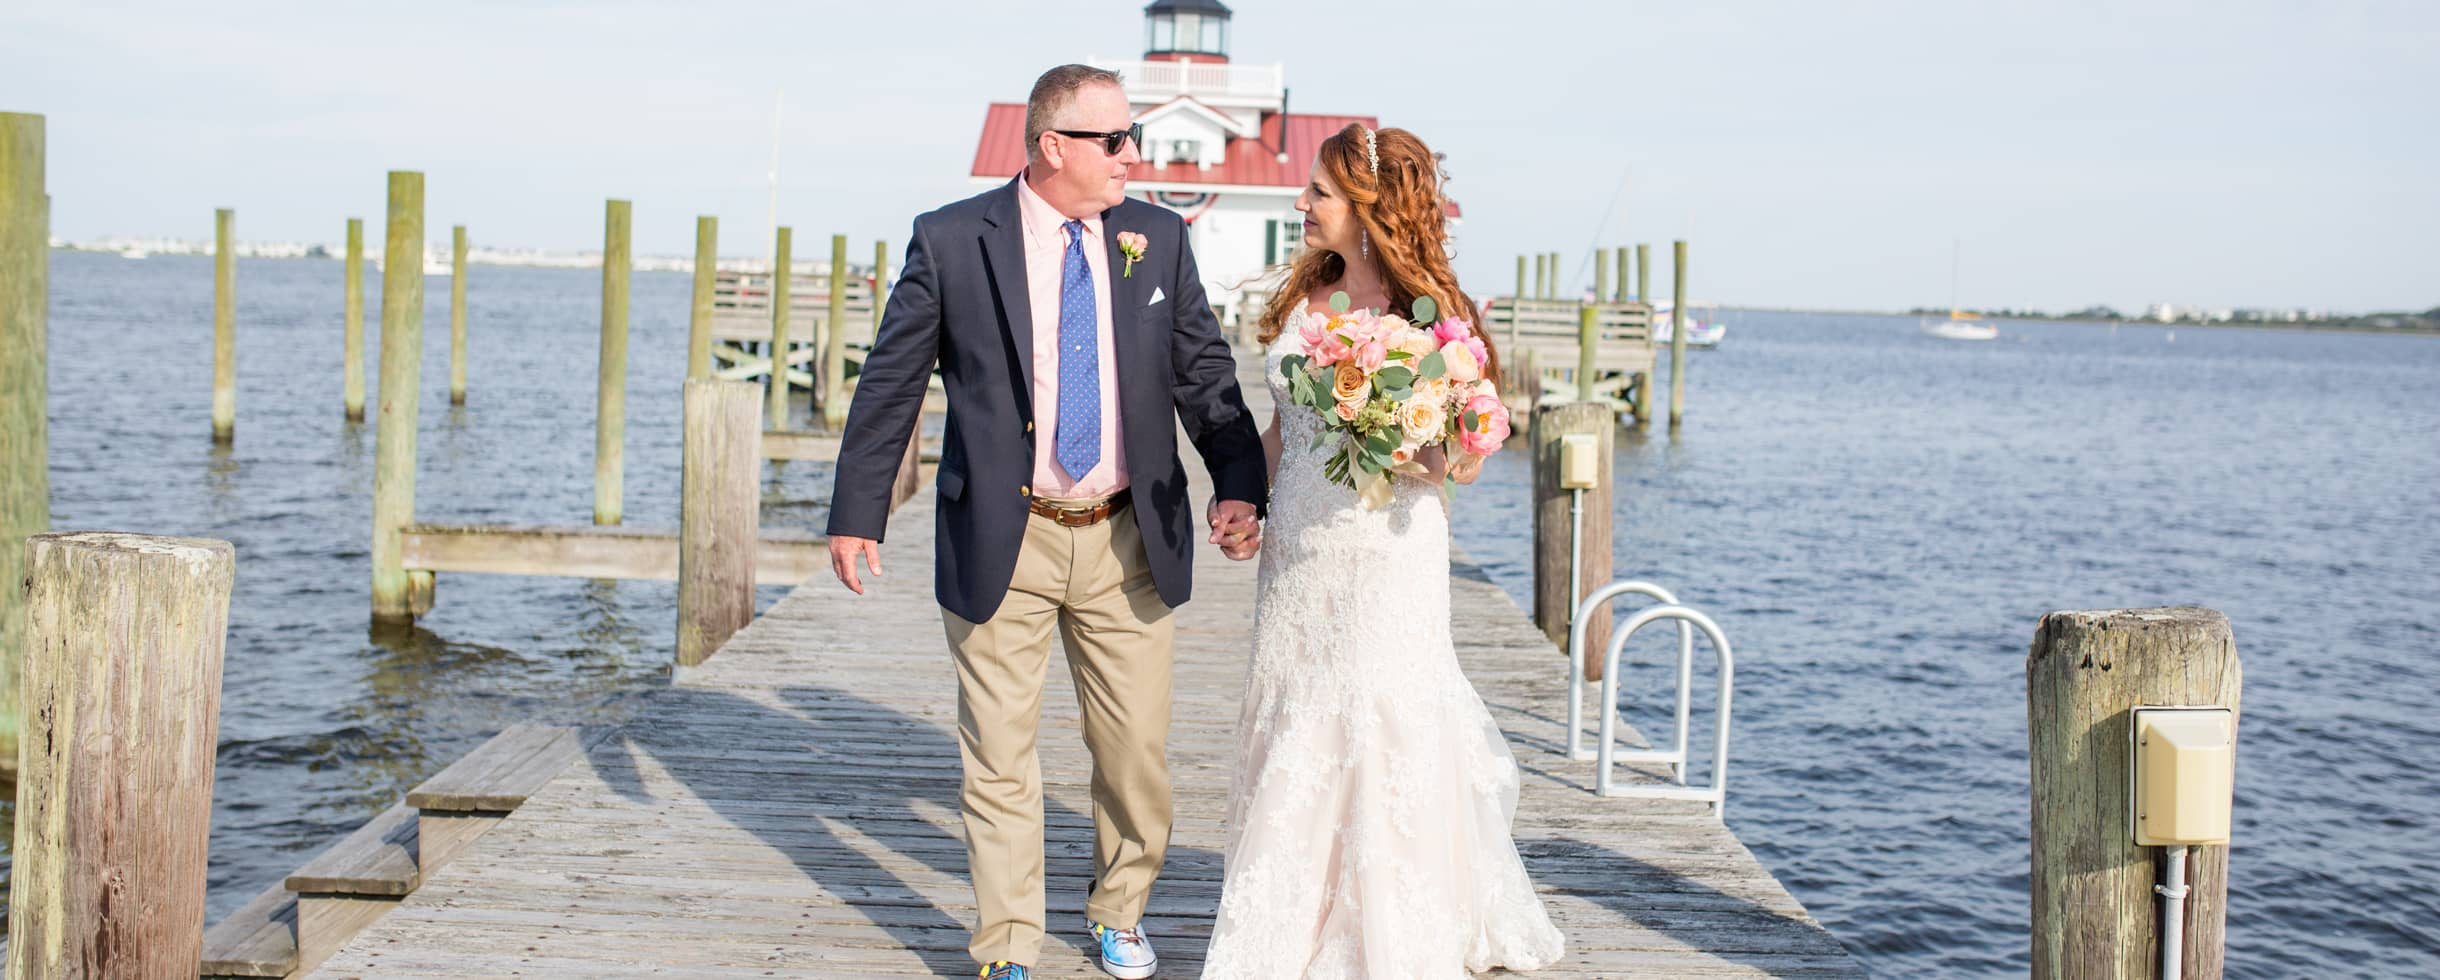 Bride and Groom on a pier near the waters edge